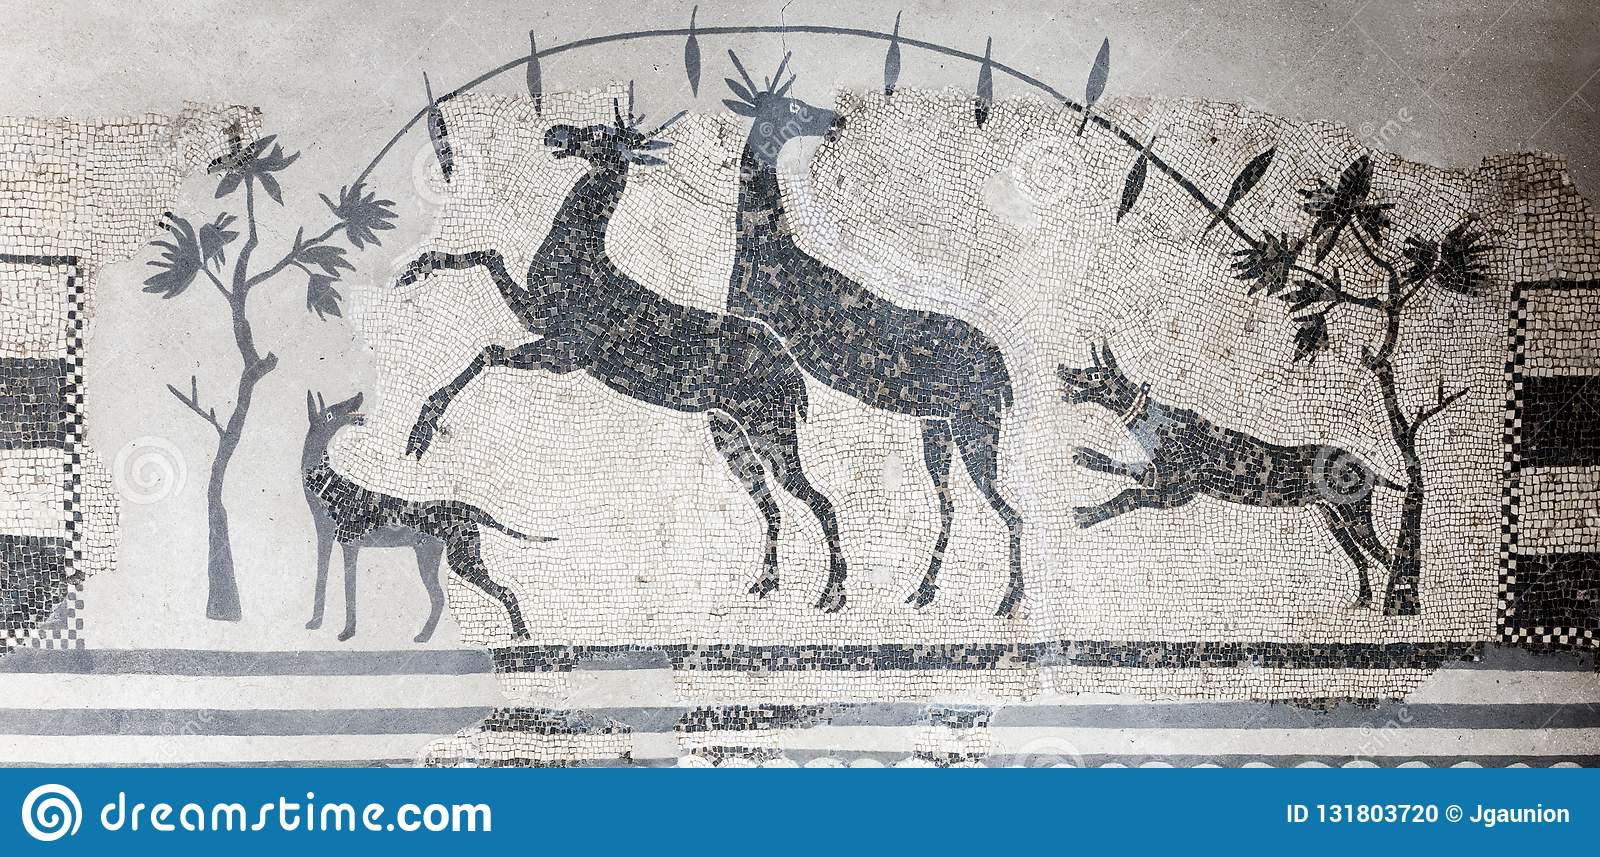 Hunting scene mosaic with dogs and deers. National Museum of Roman Art in Merida, Spain